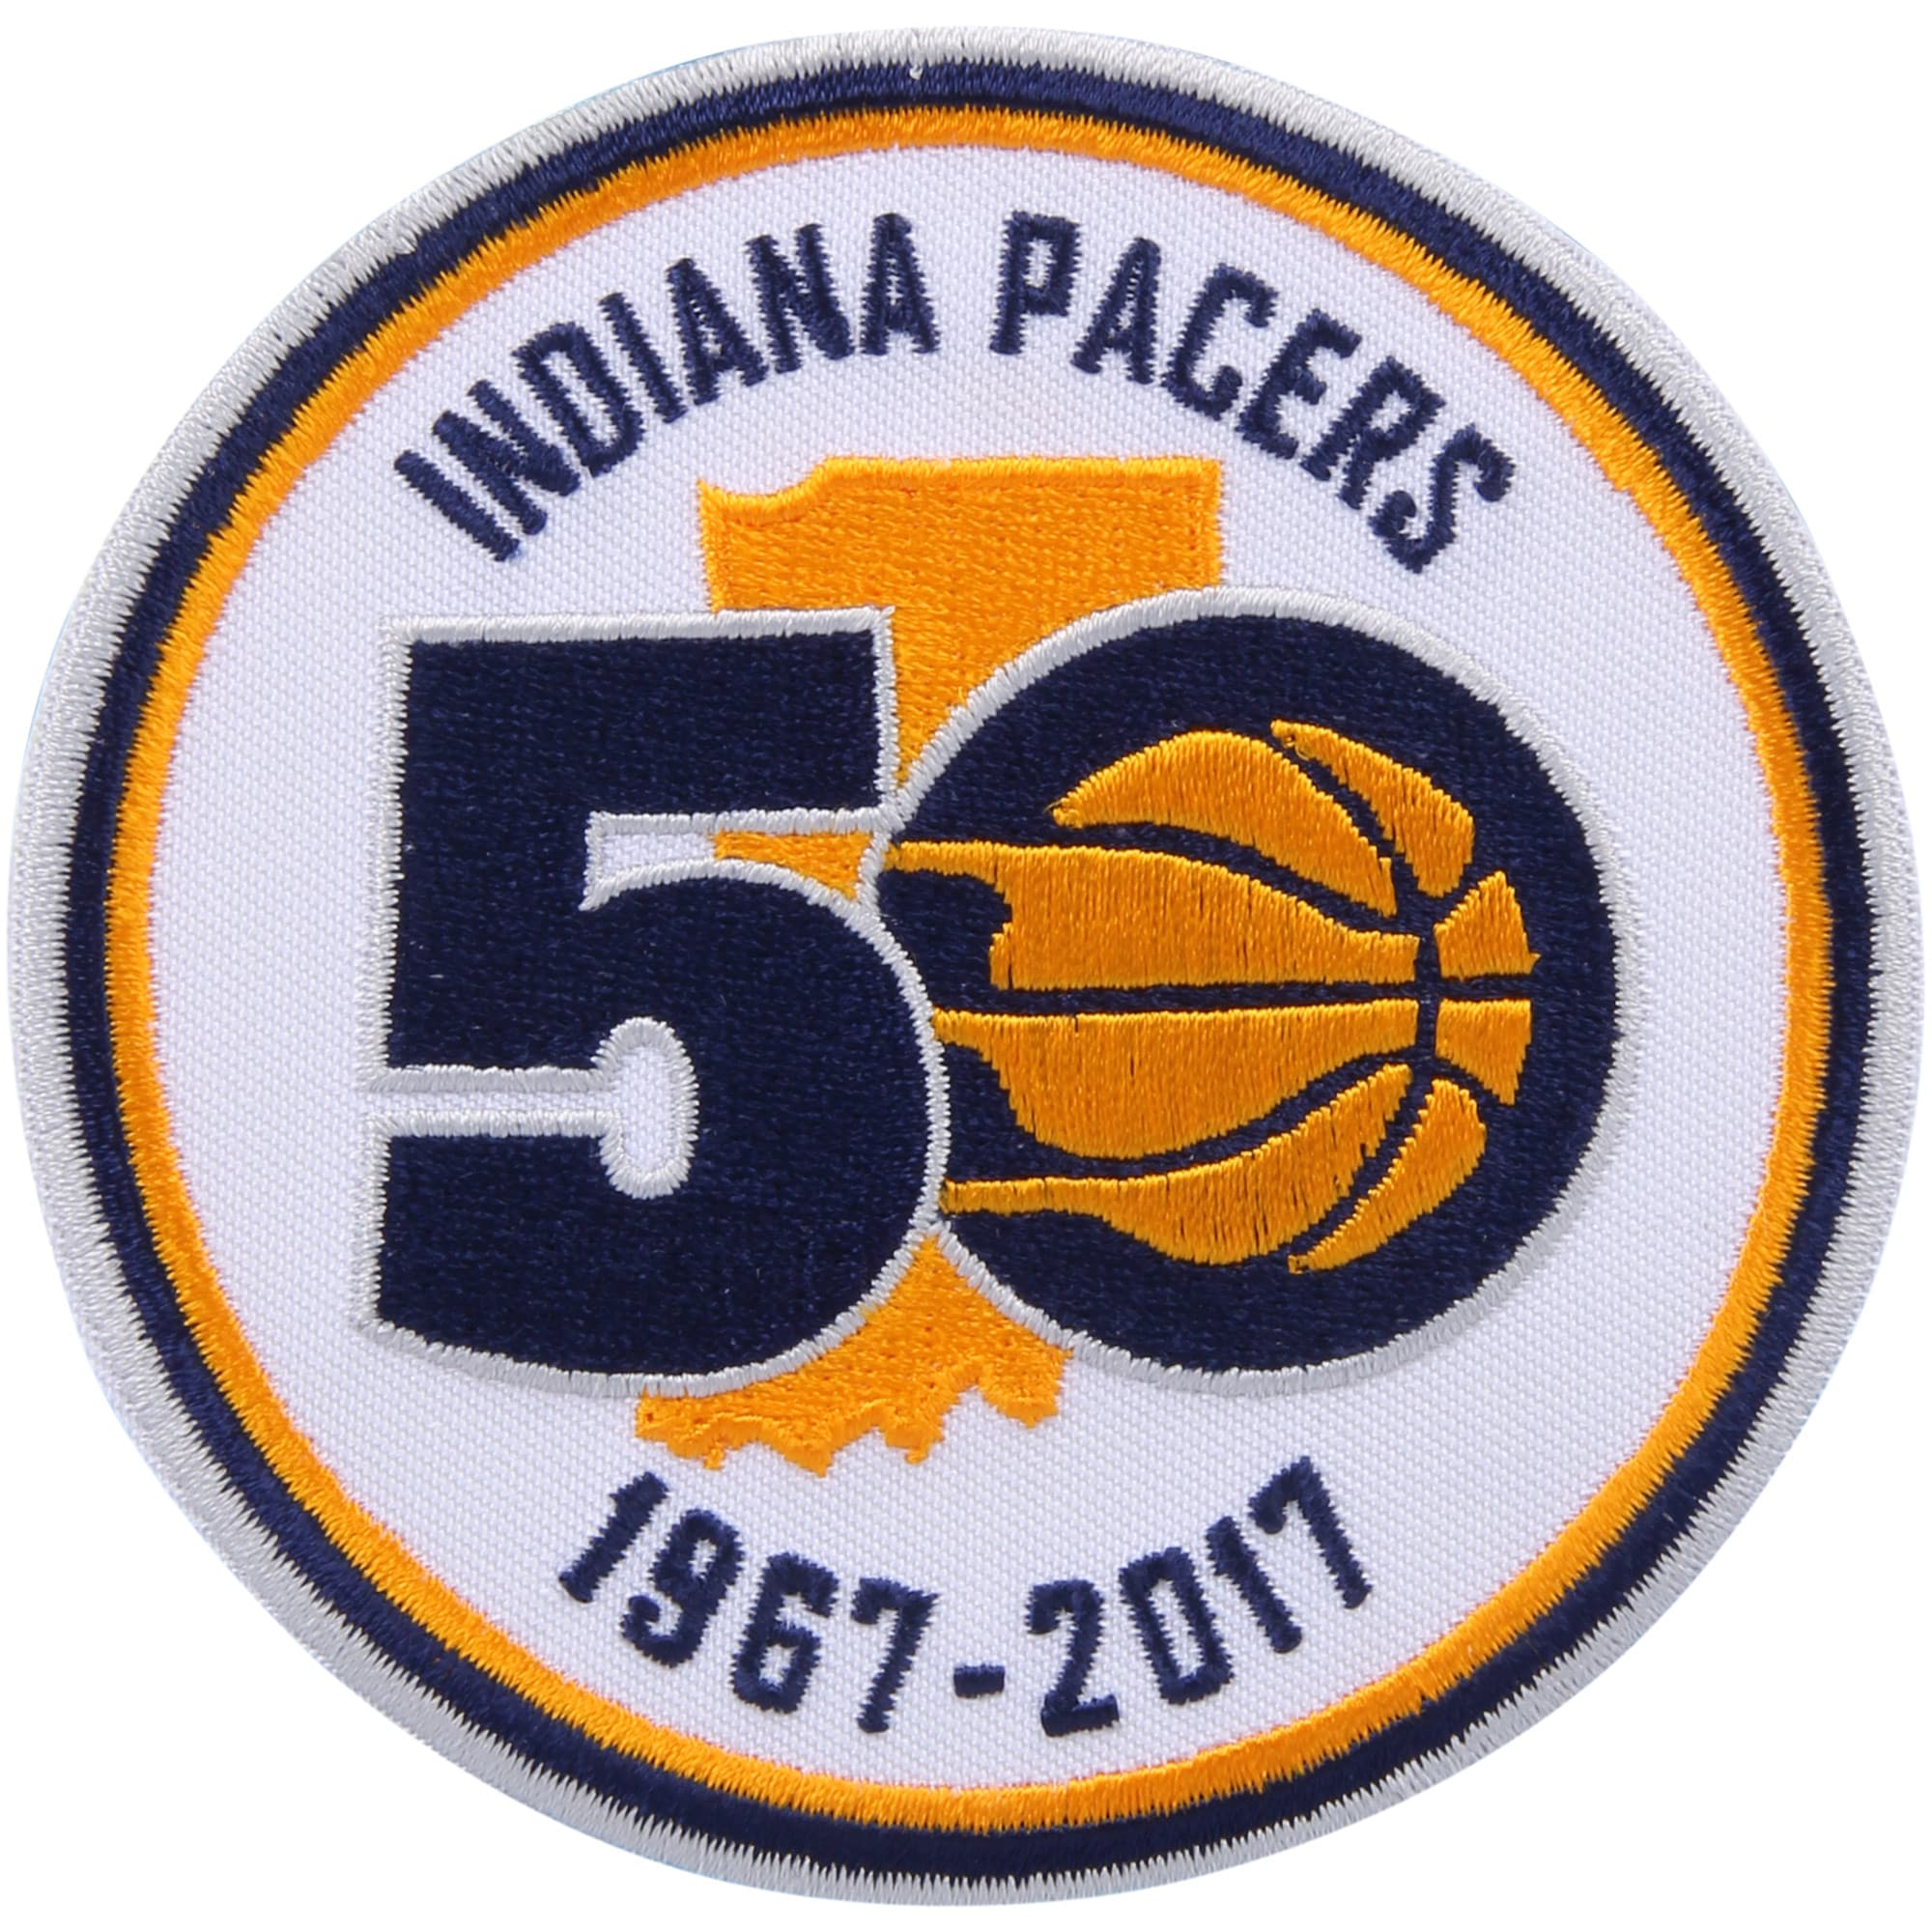 Indiana Pacers 50th Anniversary Commemorative Patch